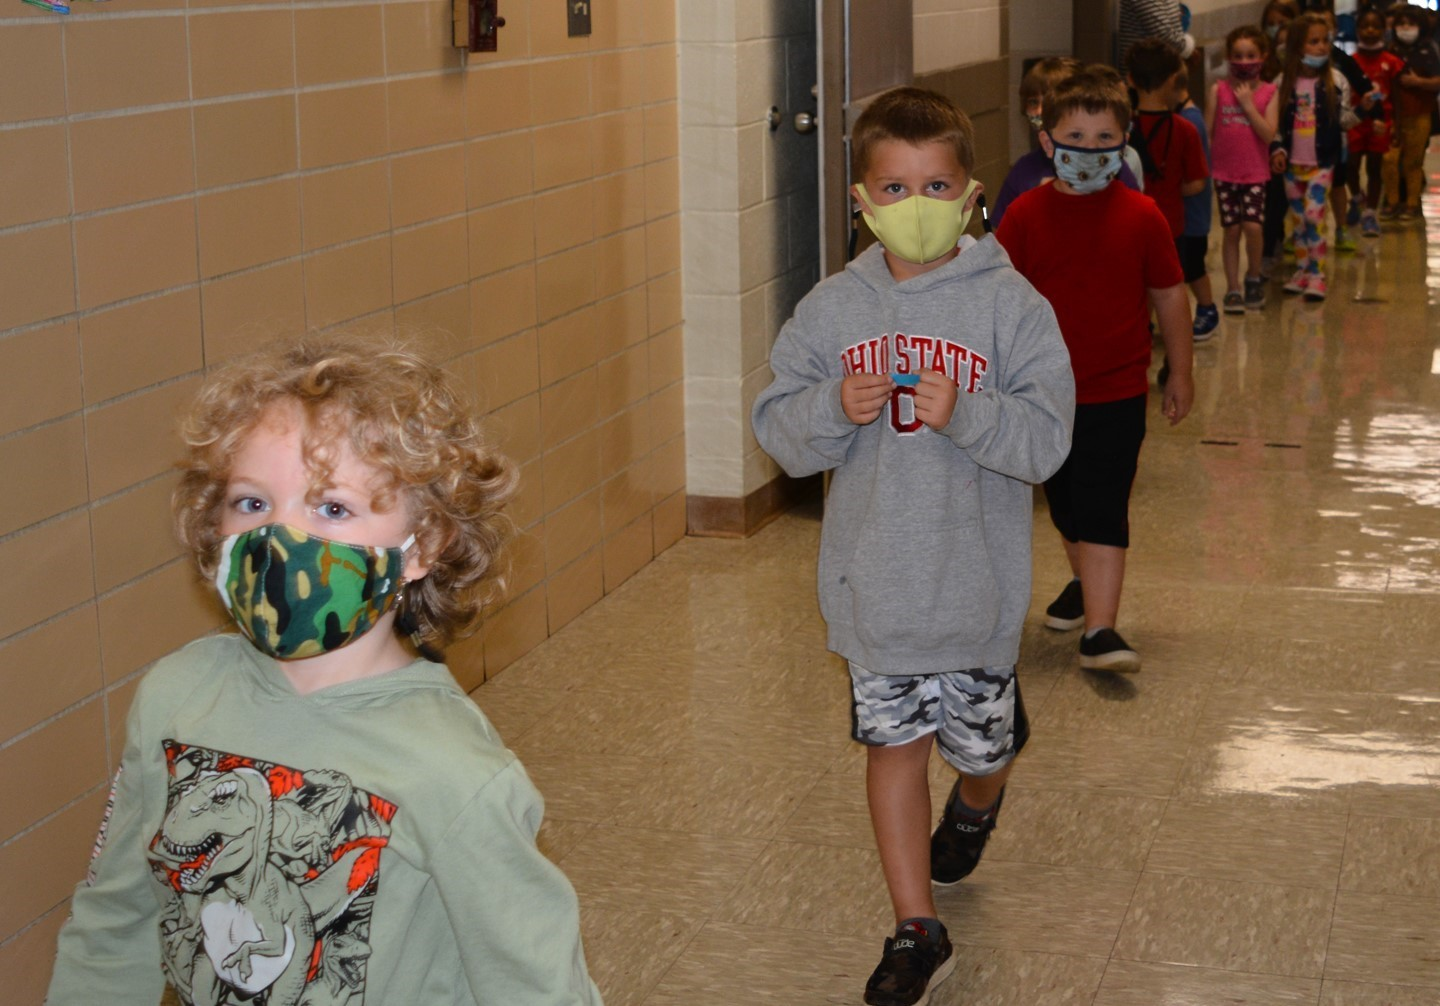 Students changing classes in the hallway.